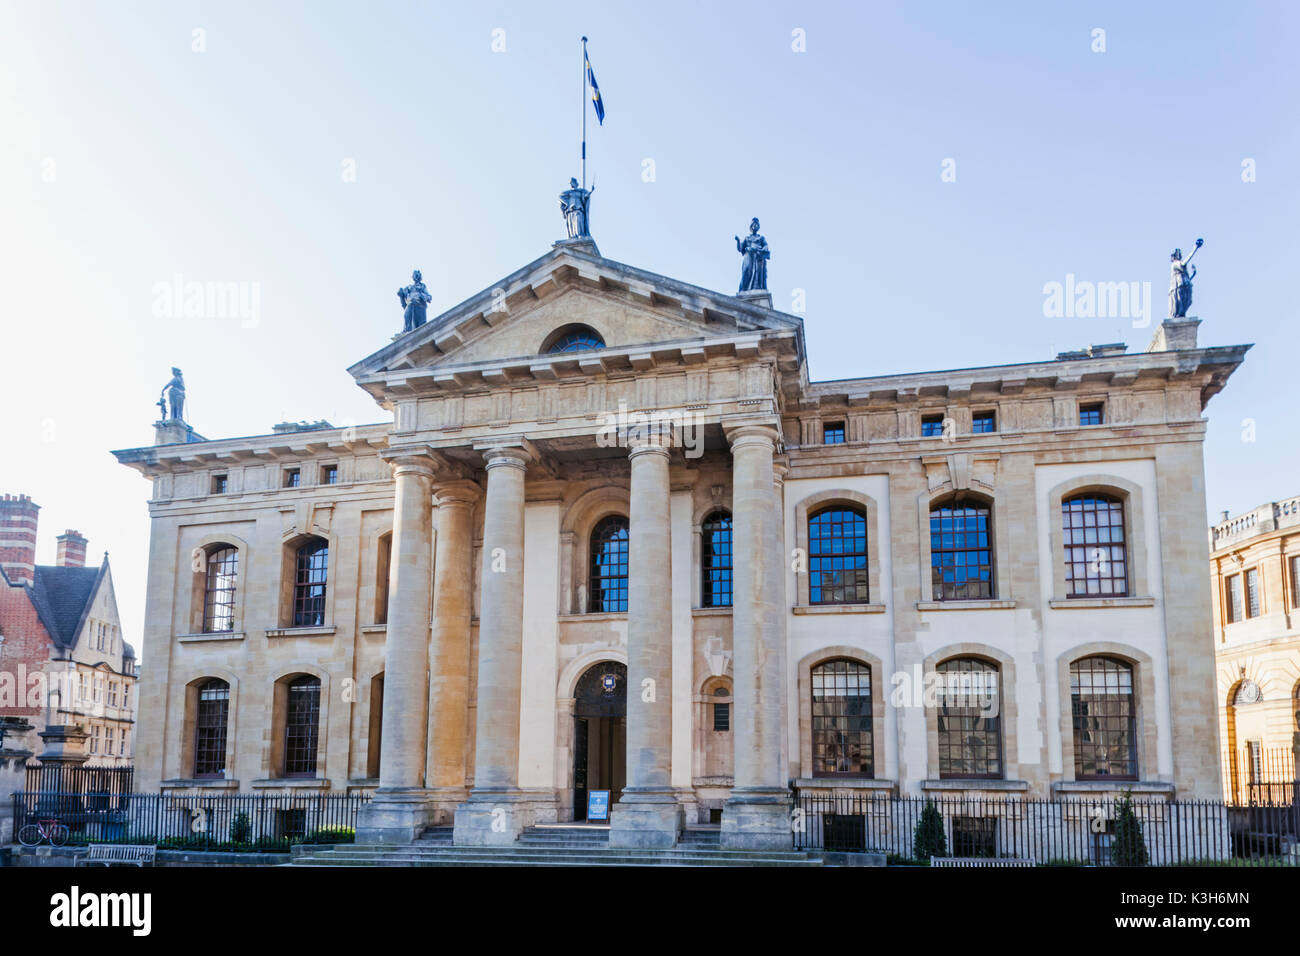 England, Oxfordshire, Oxford, Bodleian Library Building, The Clarendon Building - Stock Image